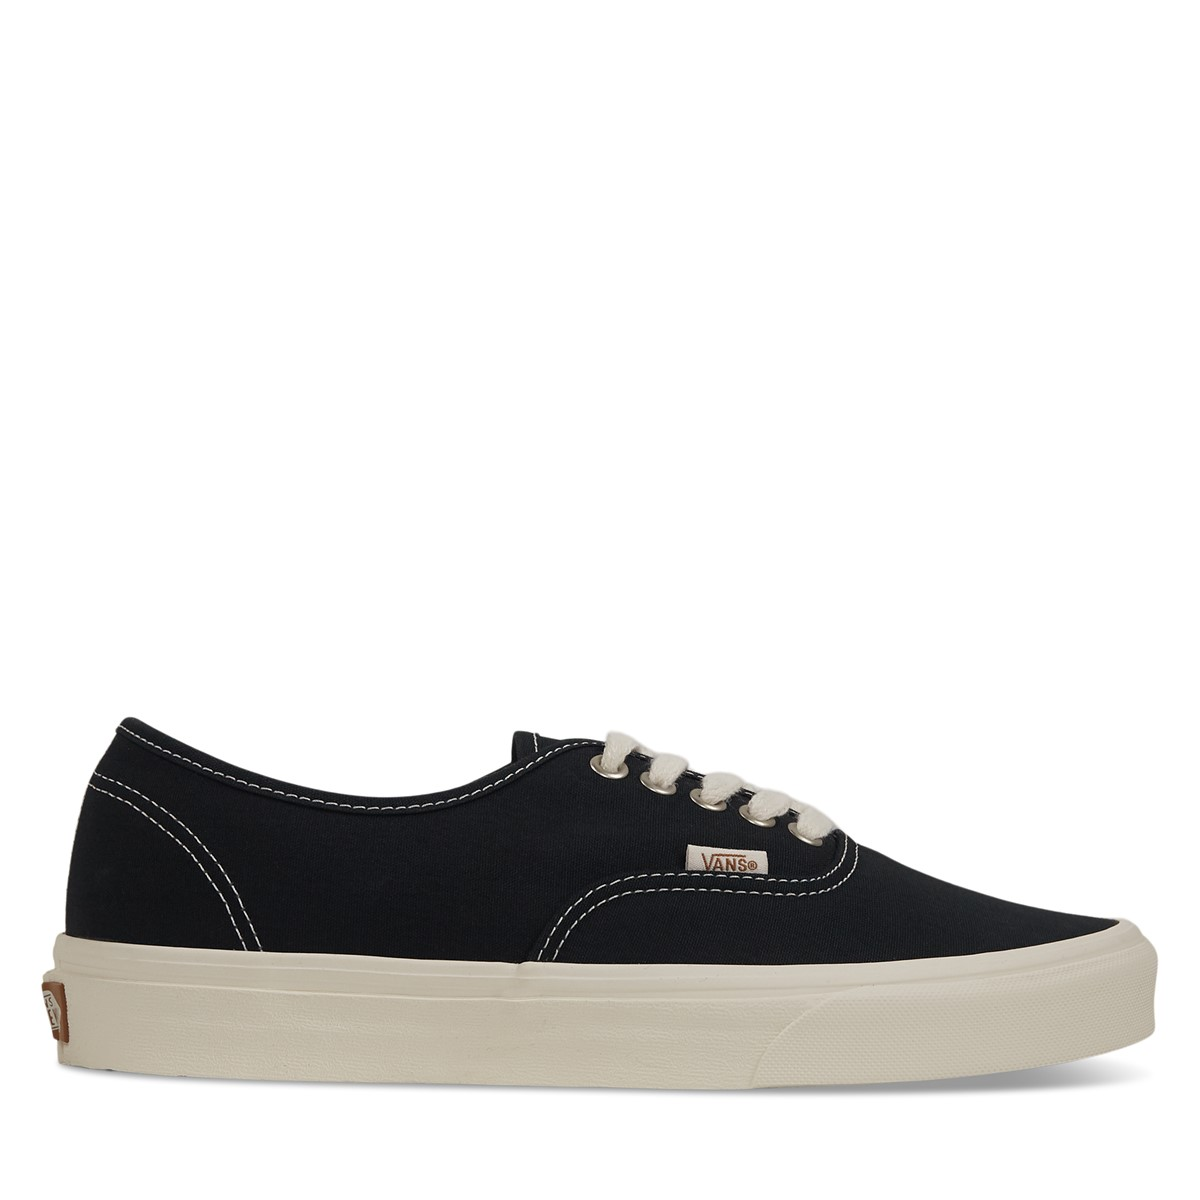 Eco Theory Authentic Sneakers in Black/Beige